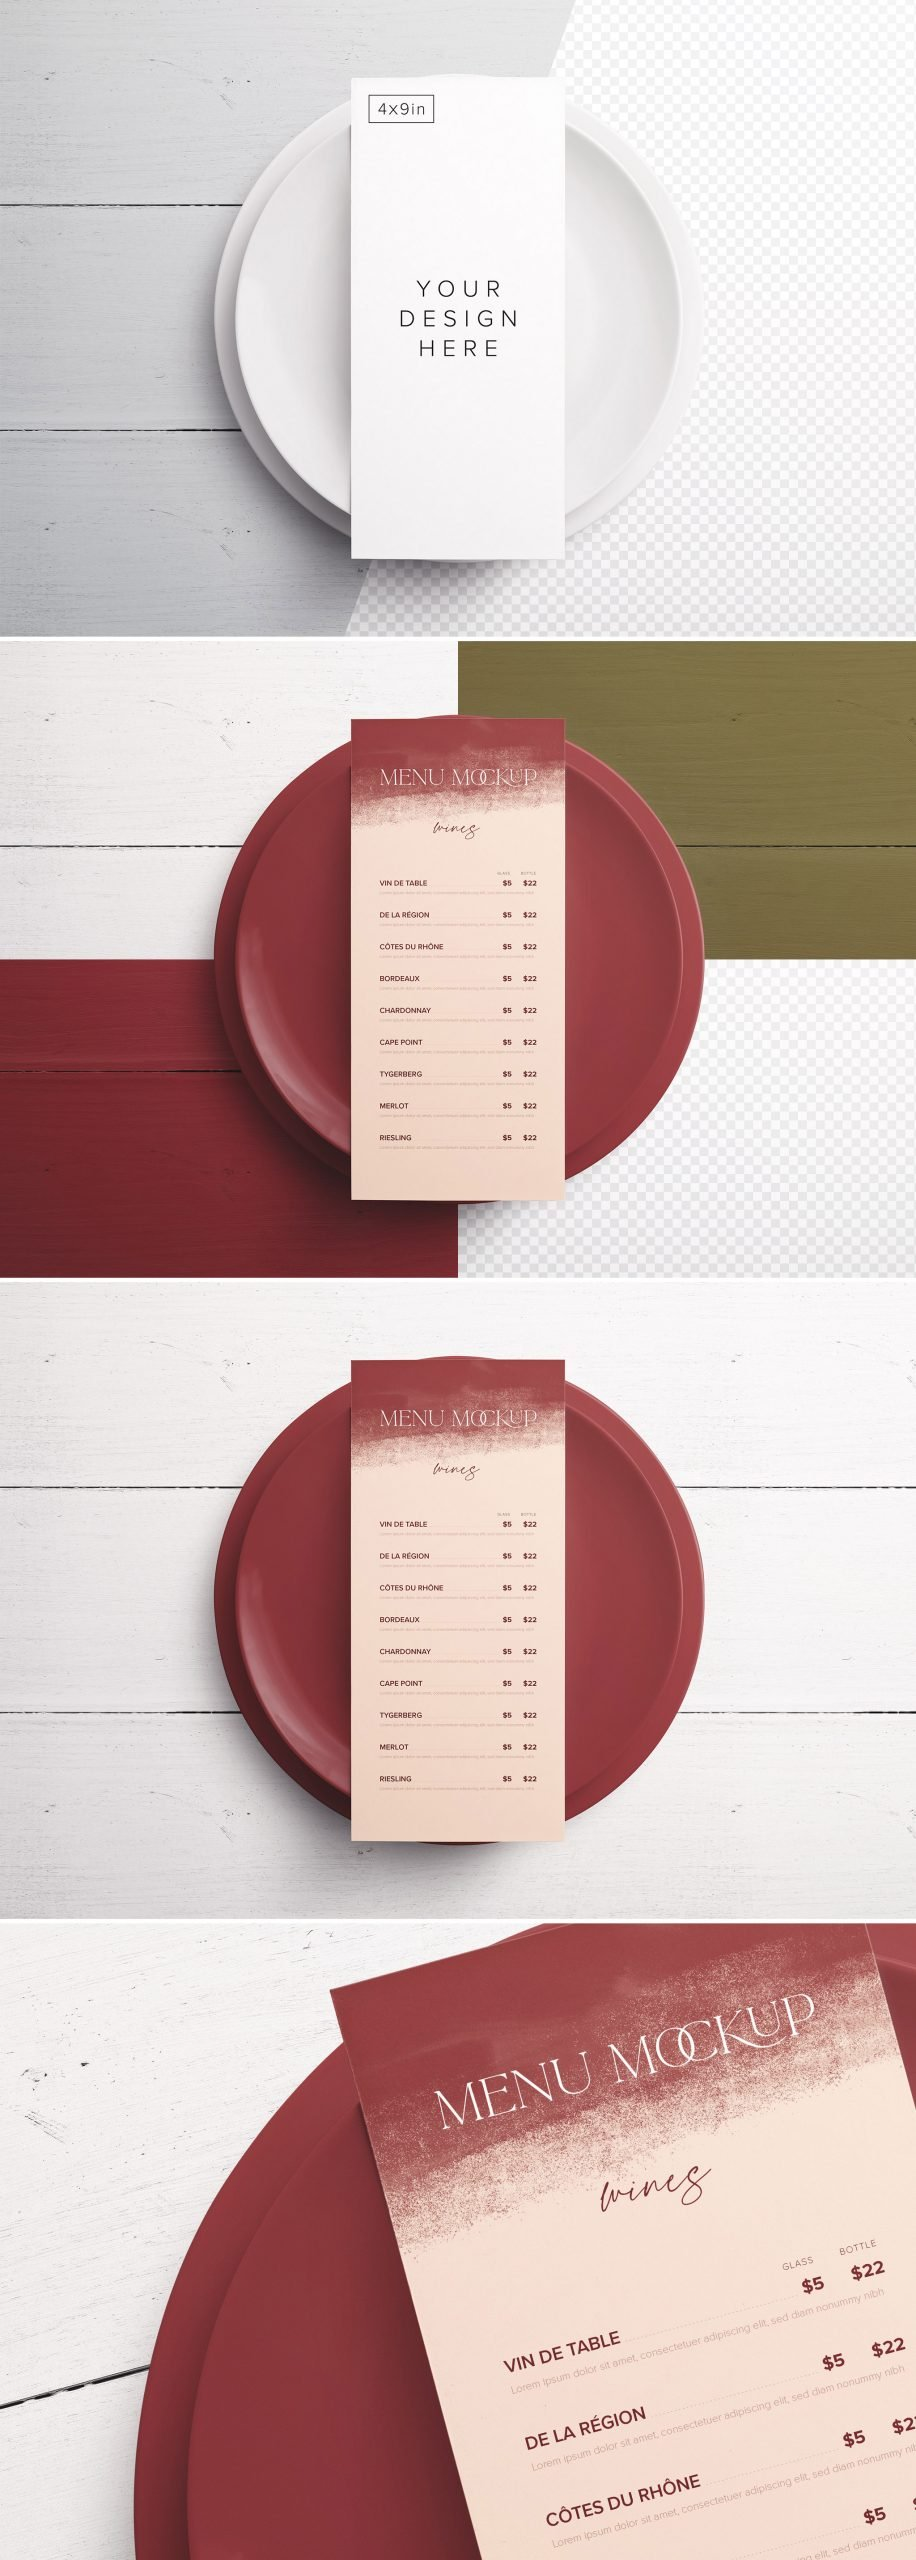 Table 4X9In Menu with Plates Preview scaled